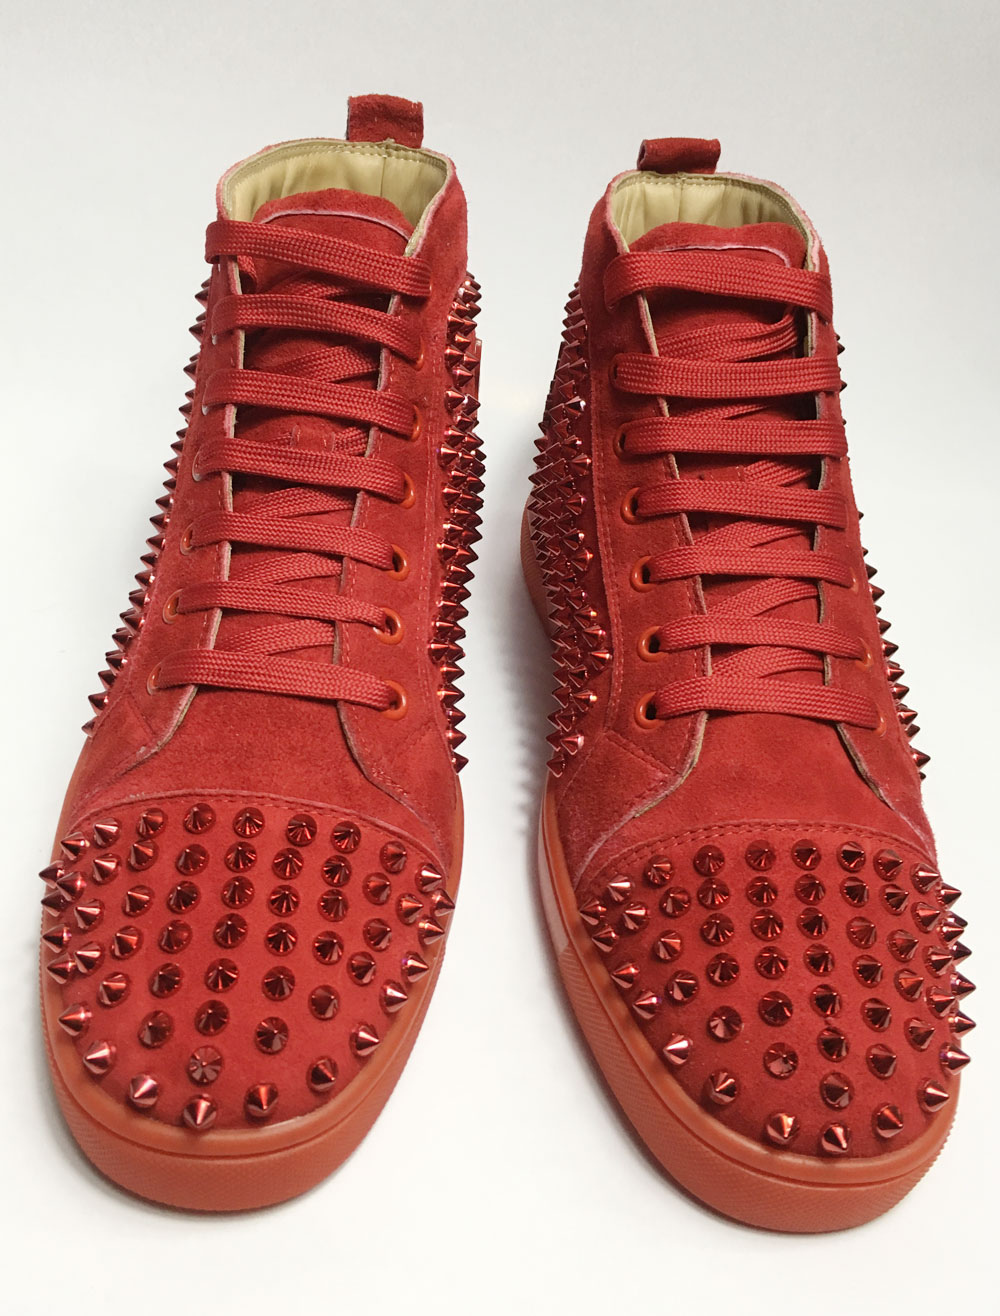 Red Skate Shoes 2018 Men Spike Shoes Suede Round Toe Lace Up High Top Sneakers